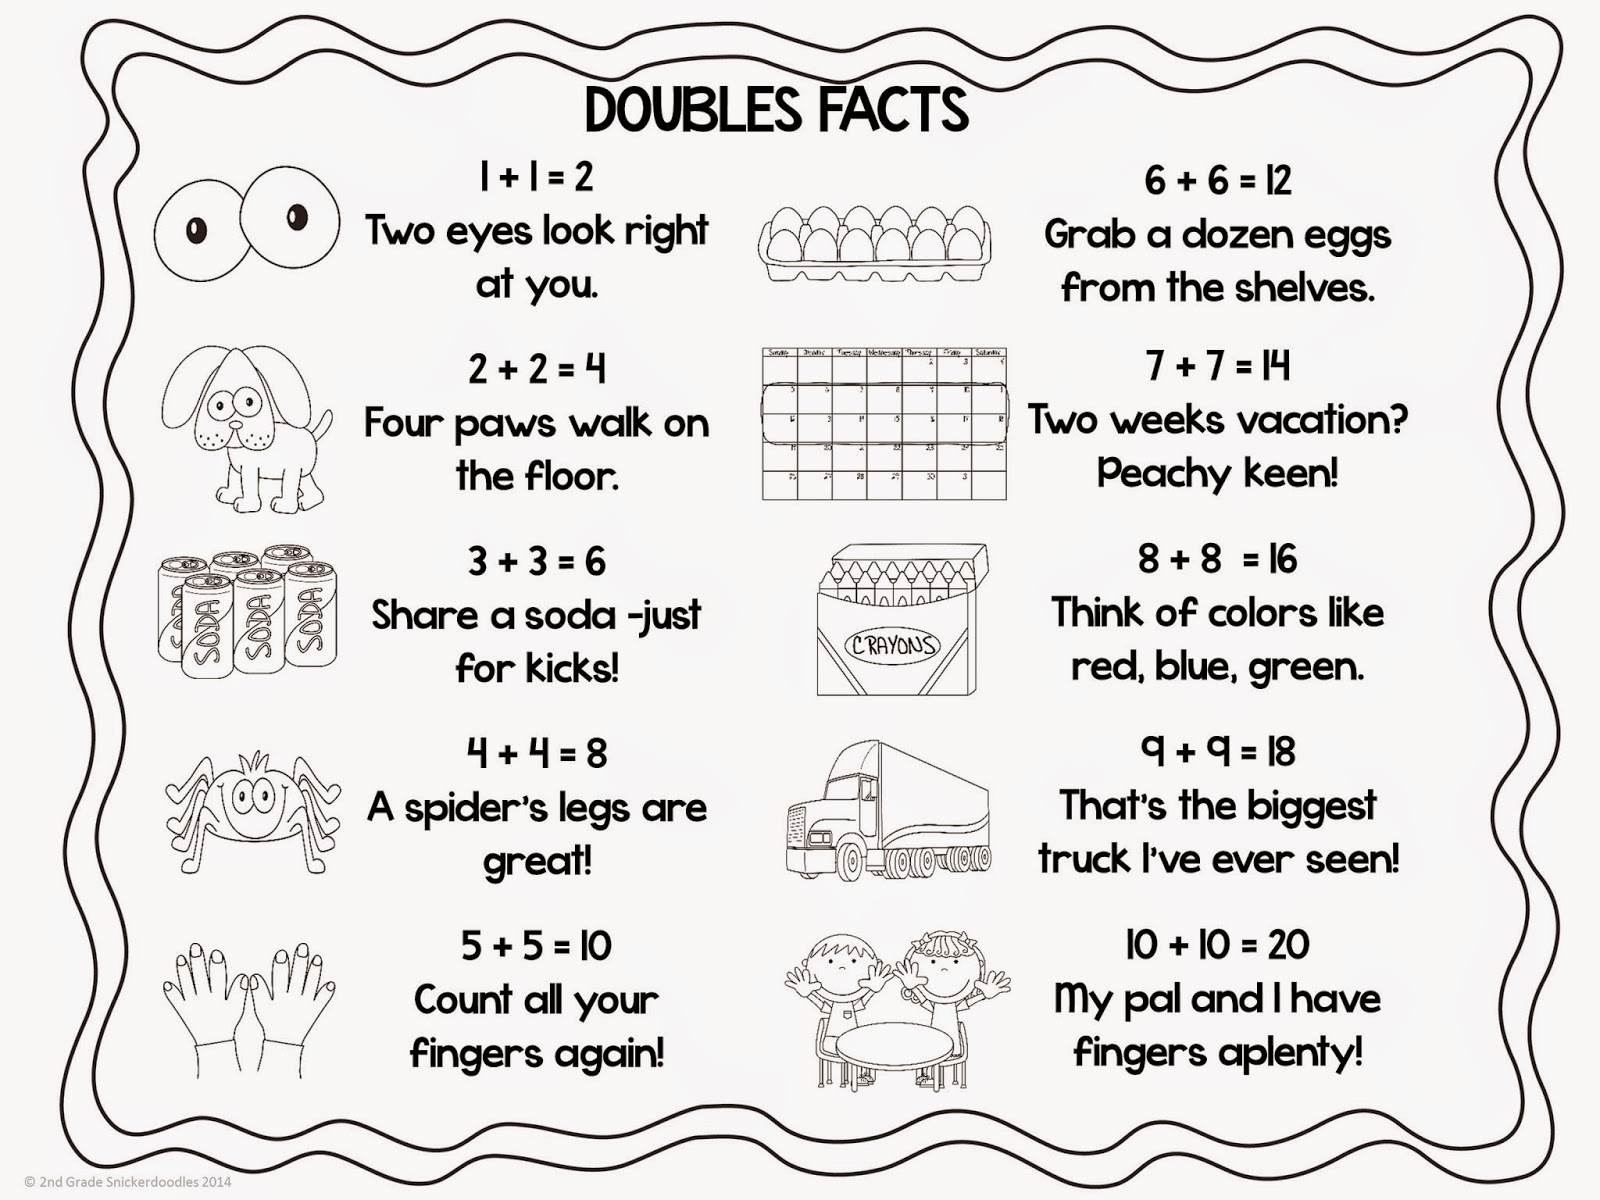 worksheet Doubles Facts 2nd grade snickerdoodles doubles facts freebie we will also add this printable copy to our interactive notebook includes a color and bw version i hope it be helpful your swe